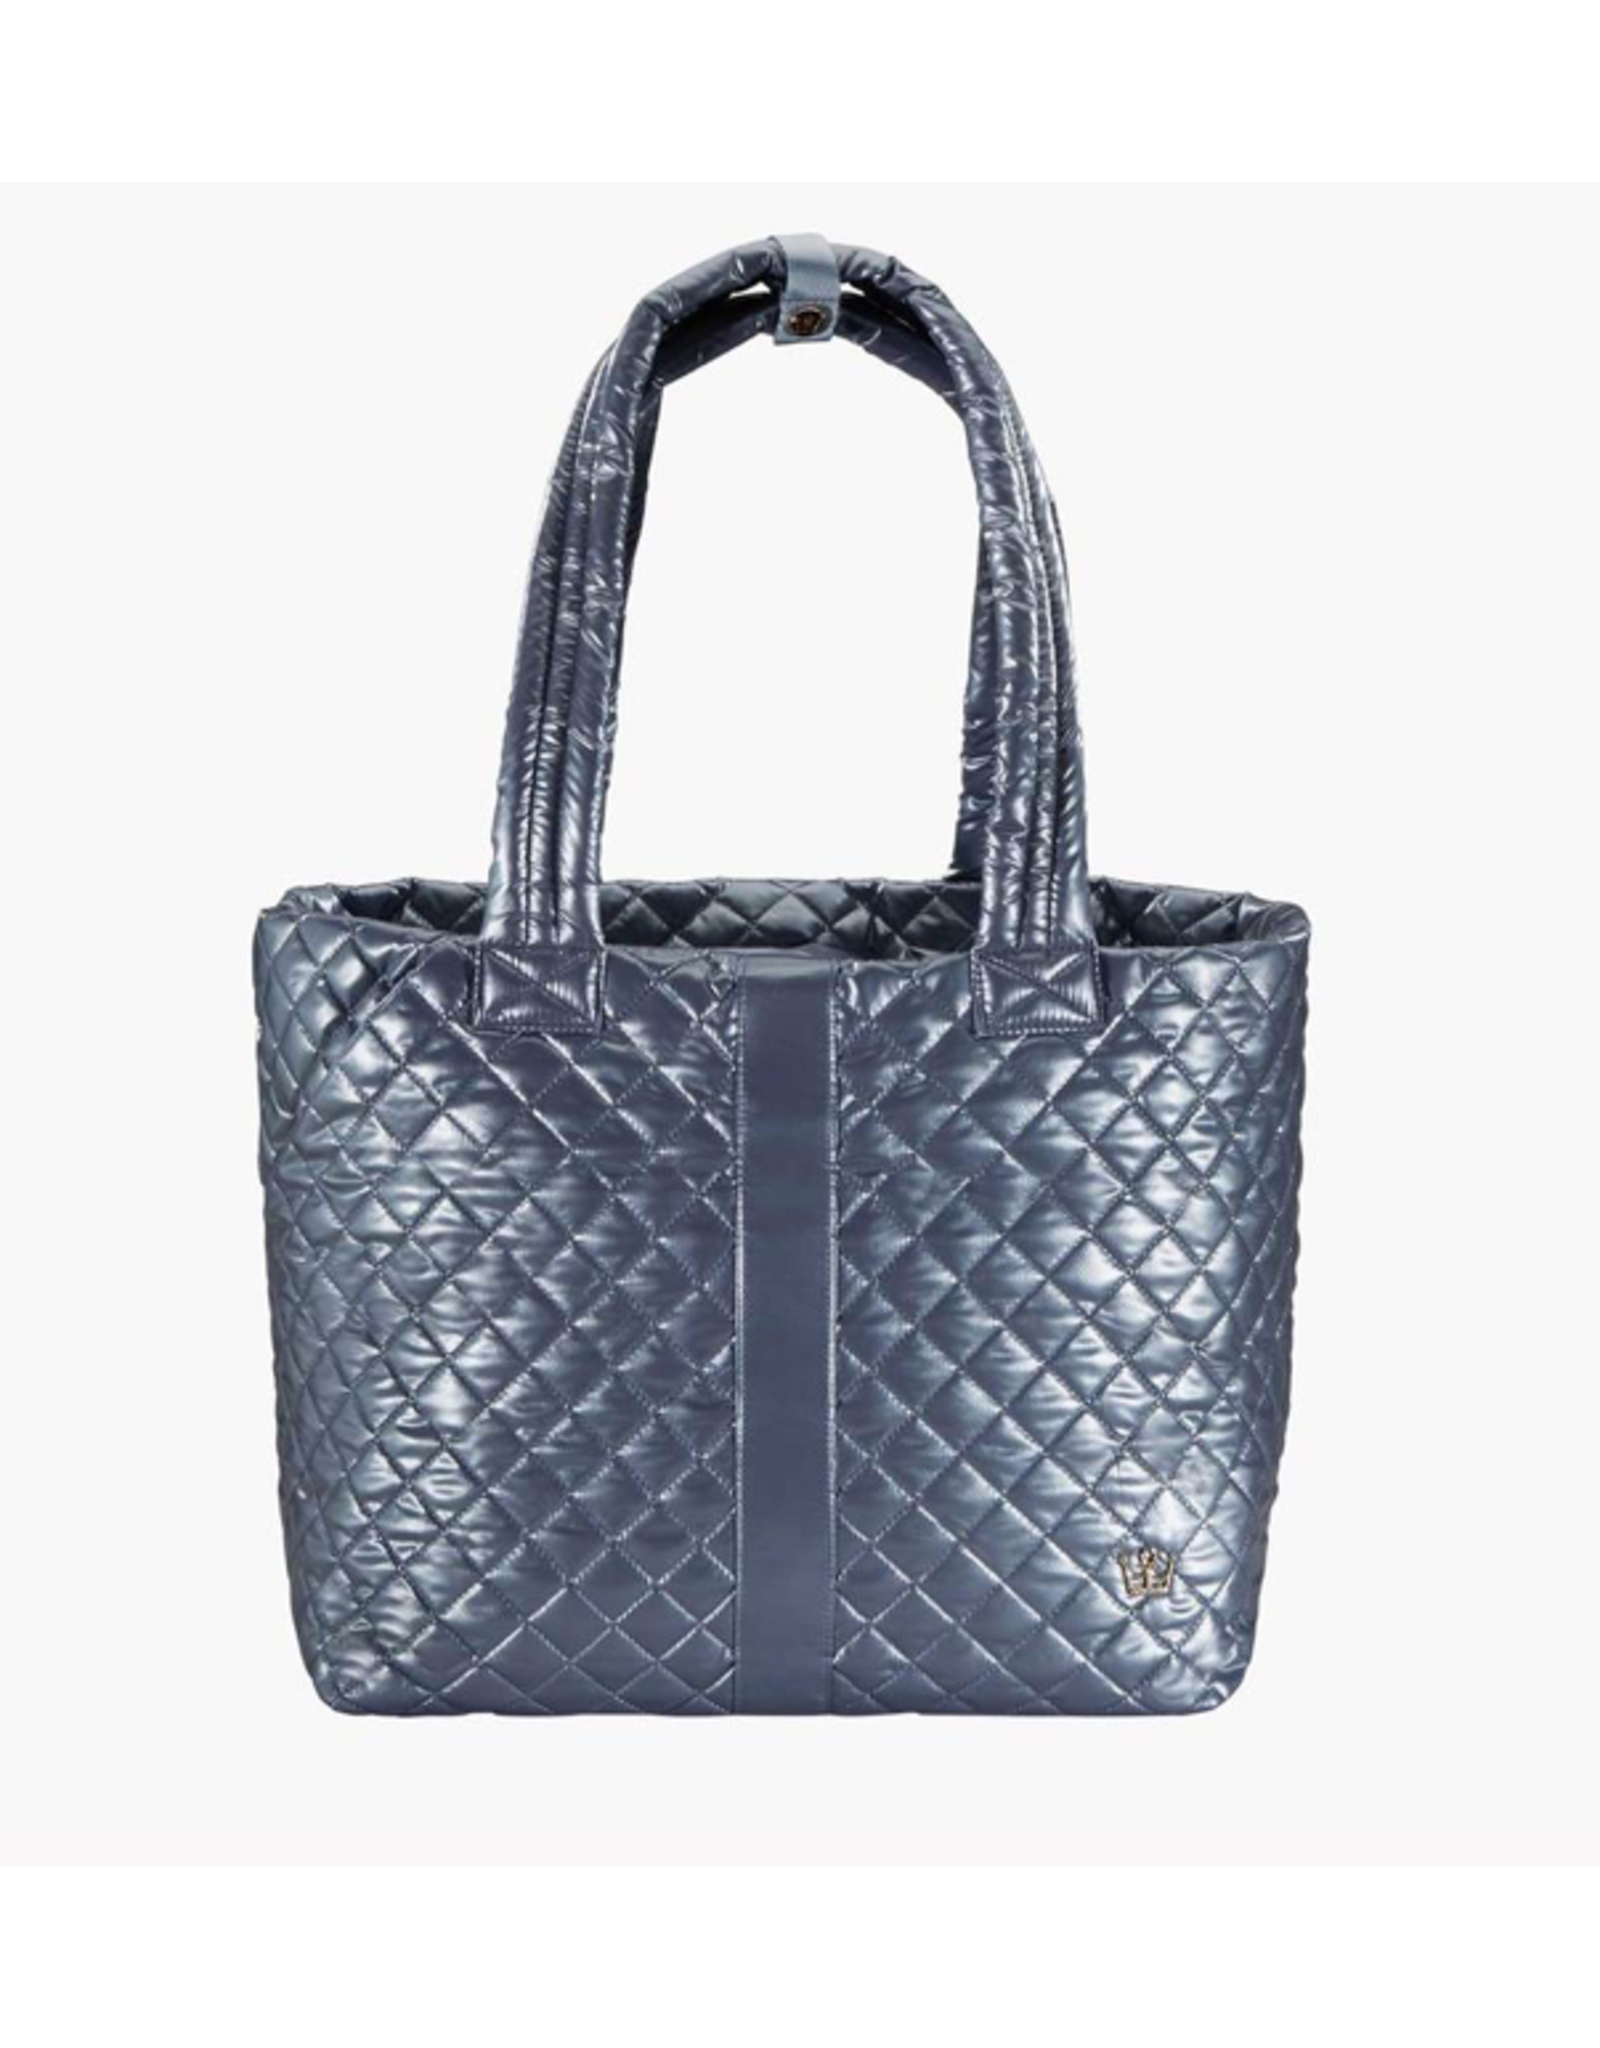 Oliver Thomas Wingwoman Tote LG Ice Queen